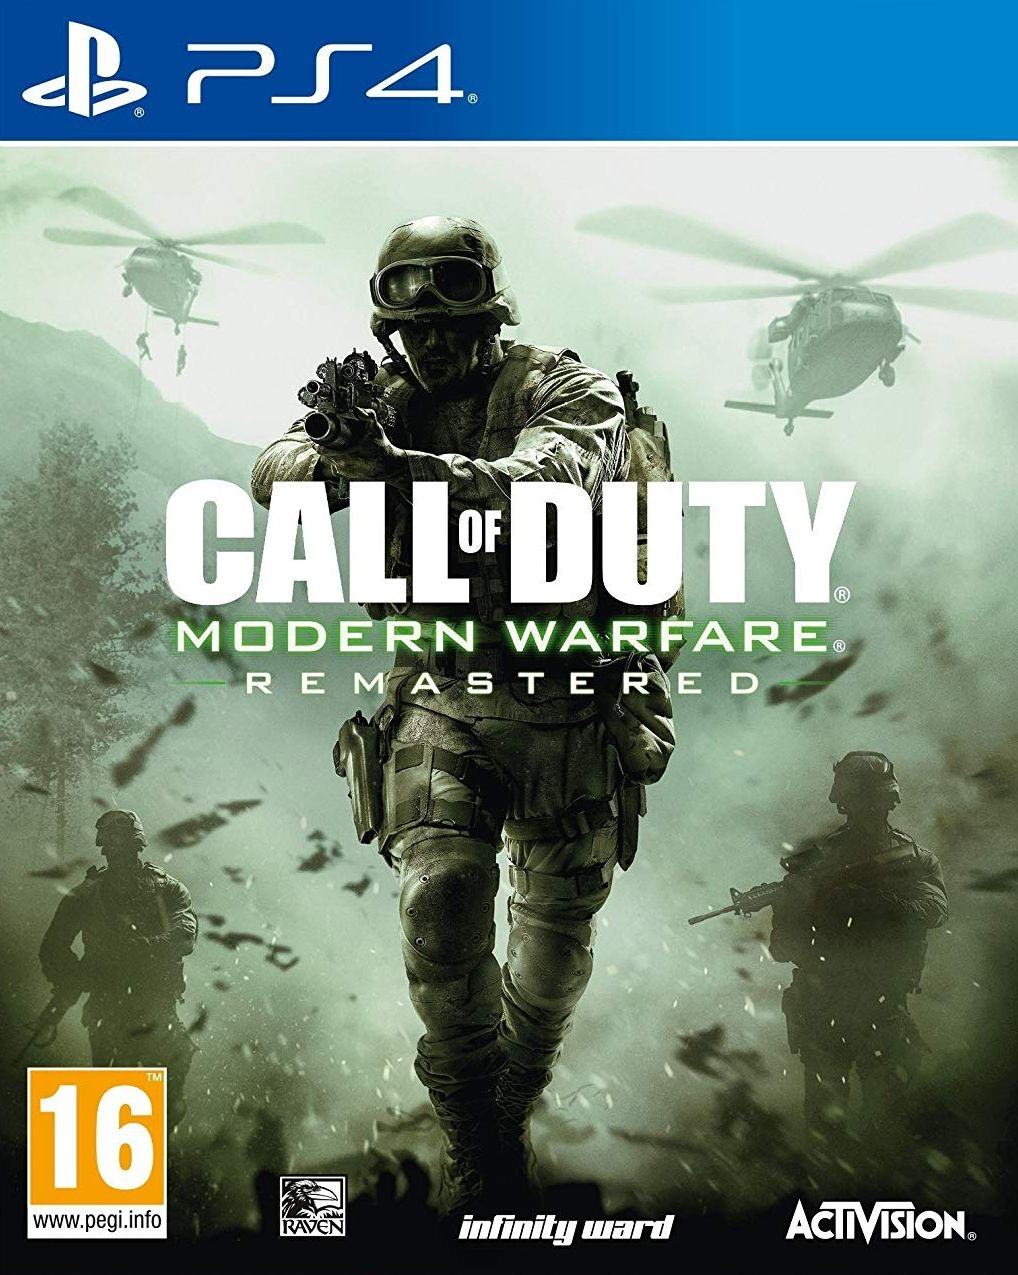 PS4 Call of Duty 4 Modern Warfare - Remastered